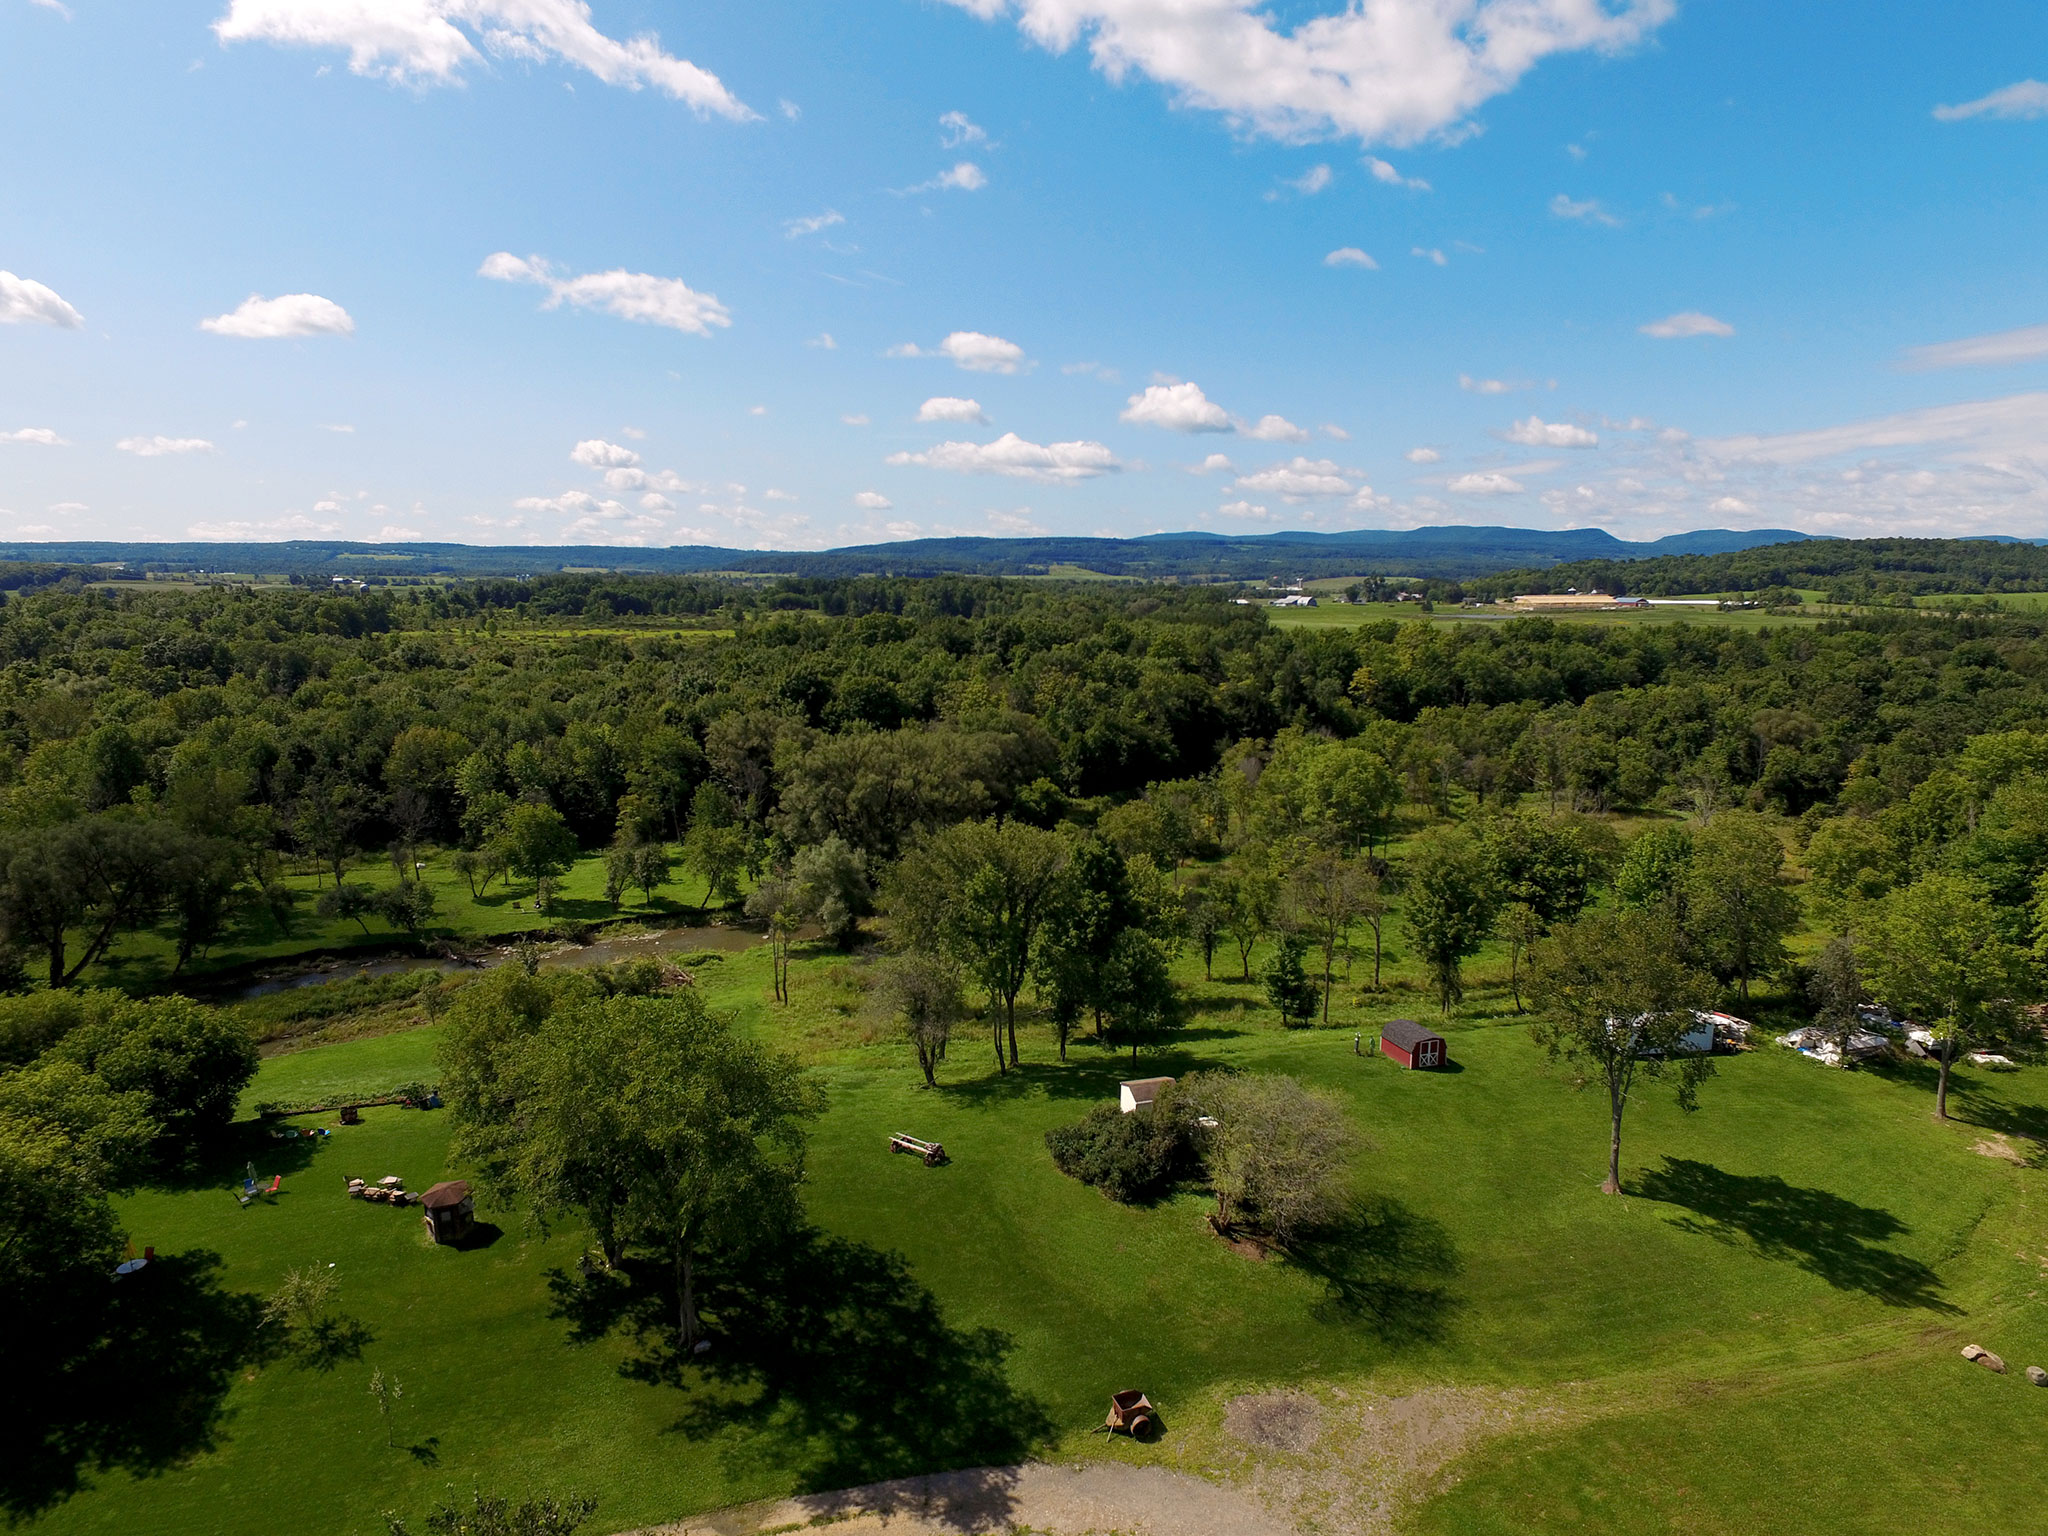 Aerial photo of backyard at property in Canajoharie, New York.